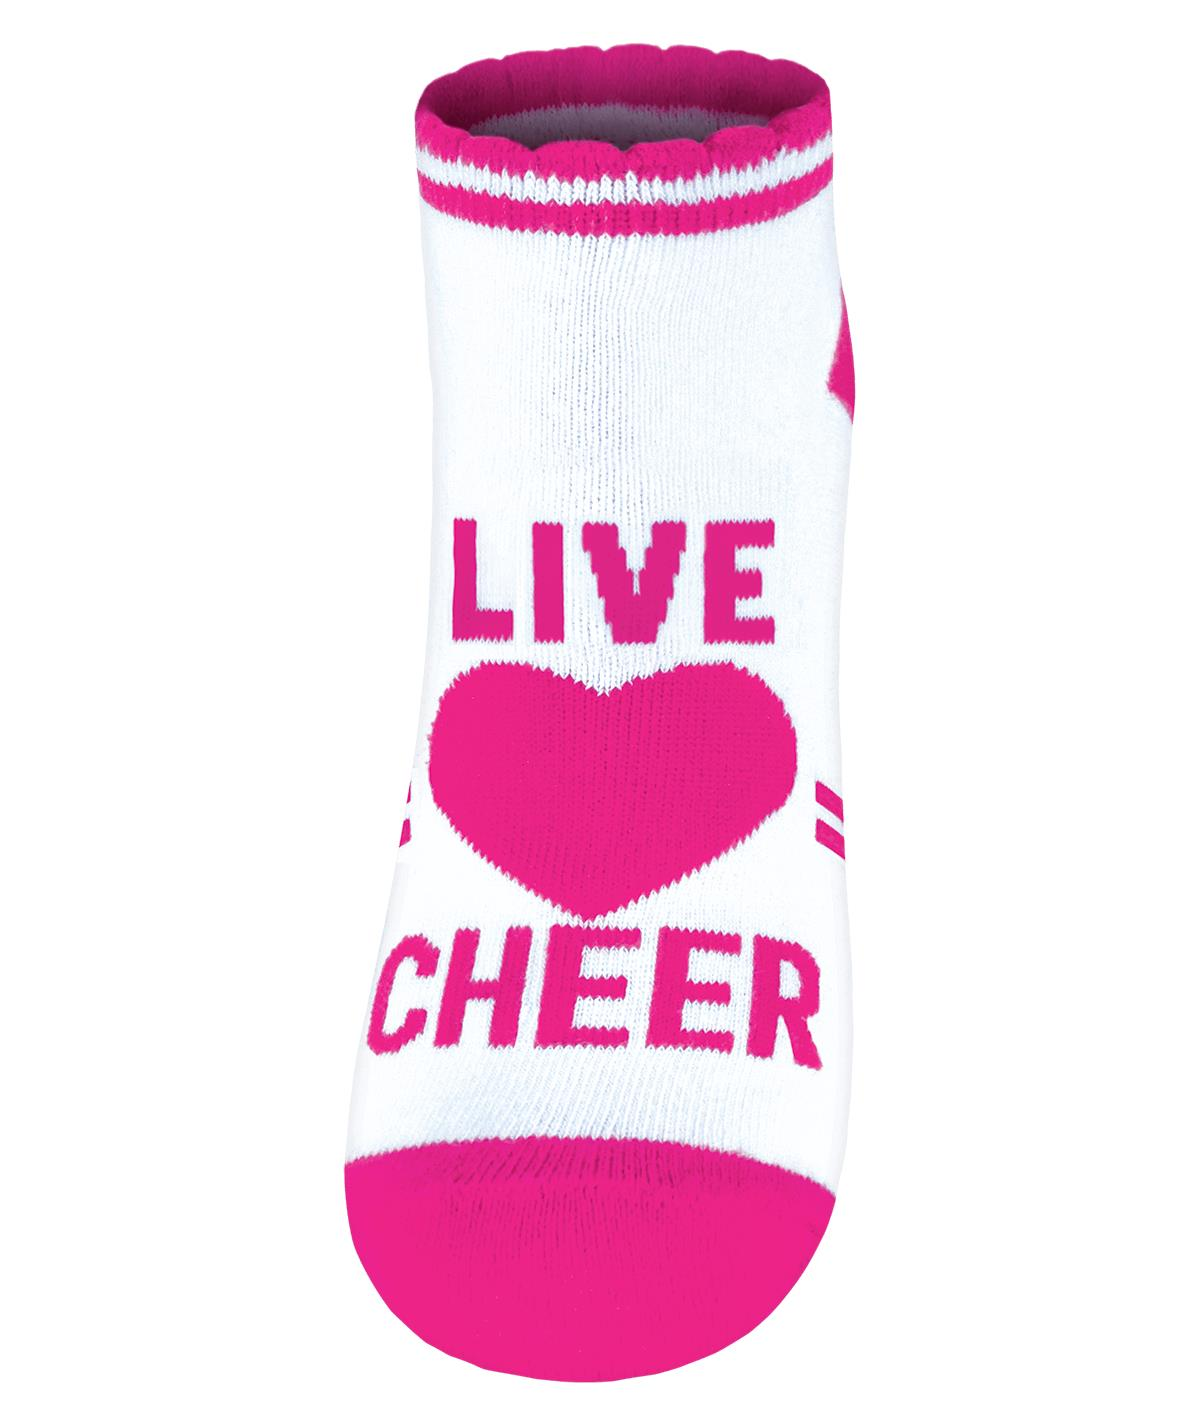 Chassé Cheer Heart Anklet